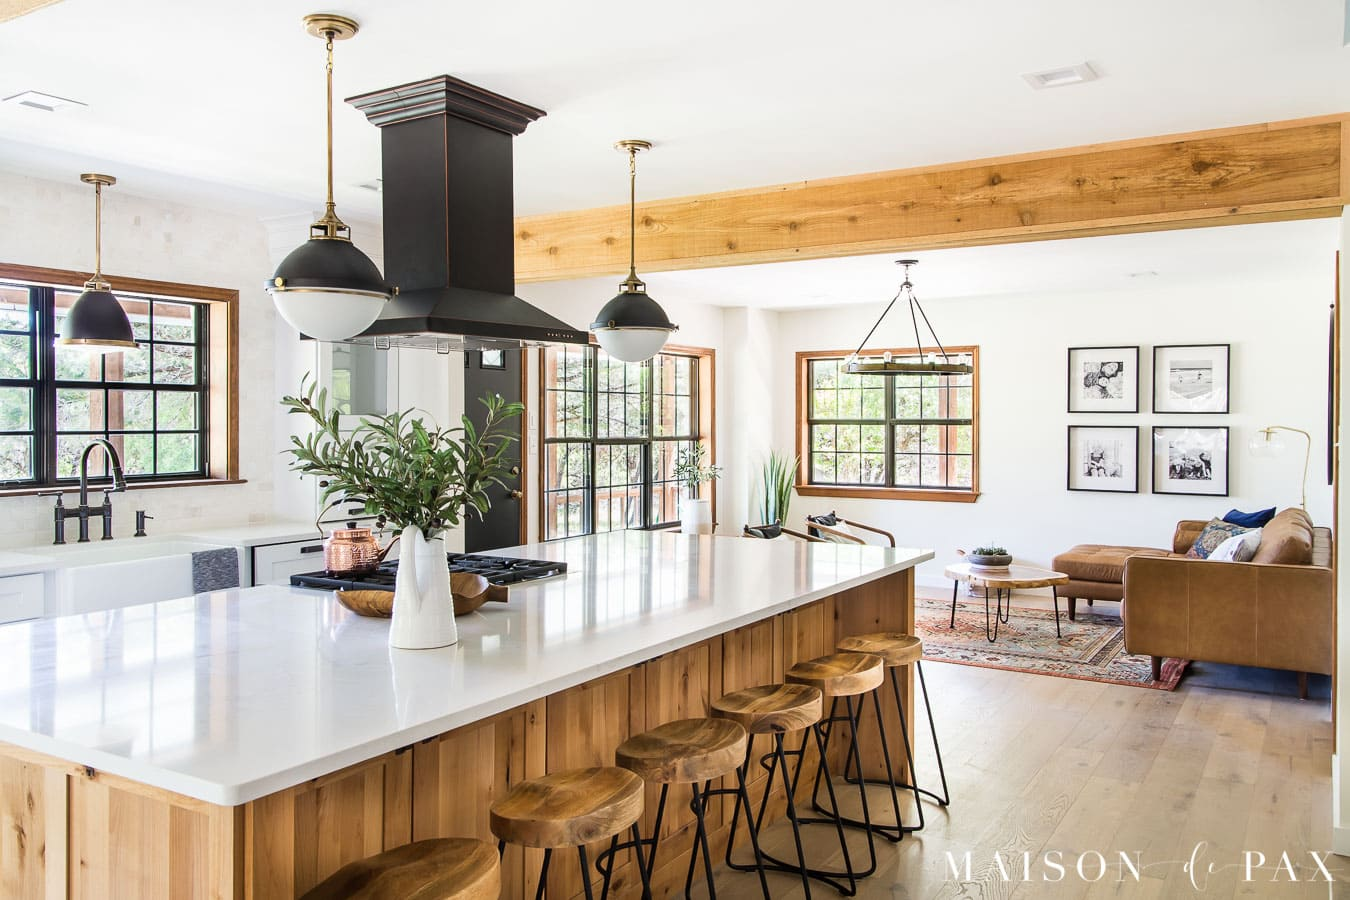 big island open kitchen with rustic mid century modern living room beyond | Maison de Pax